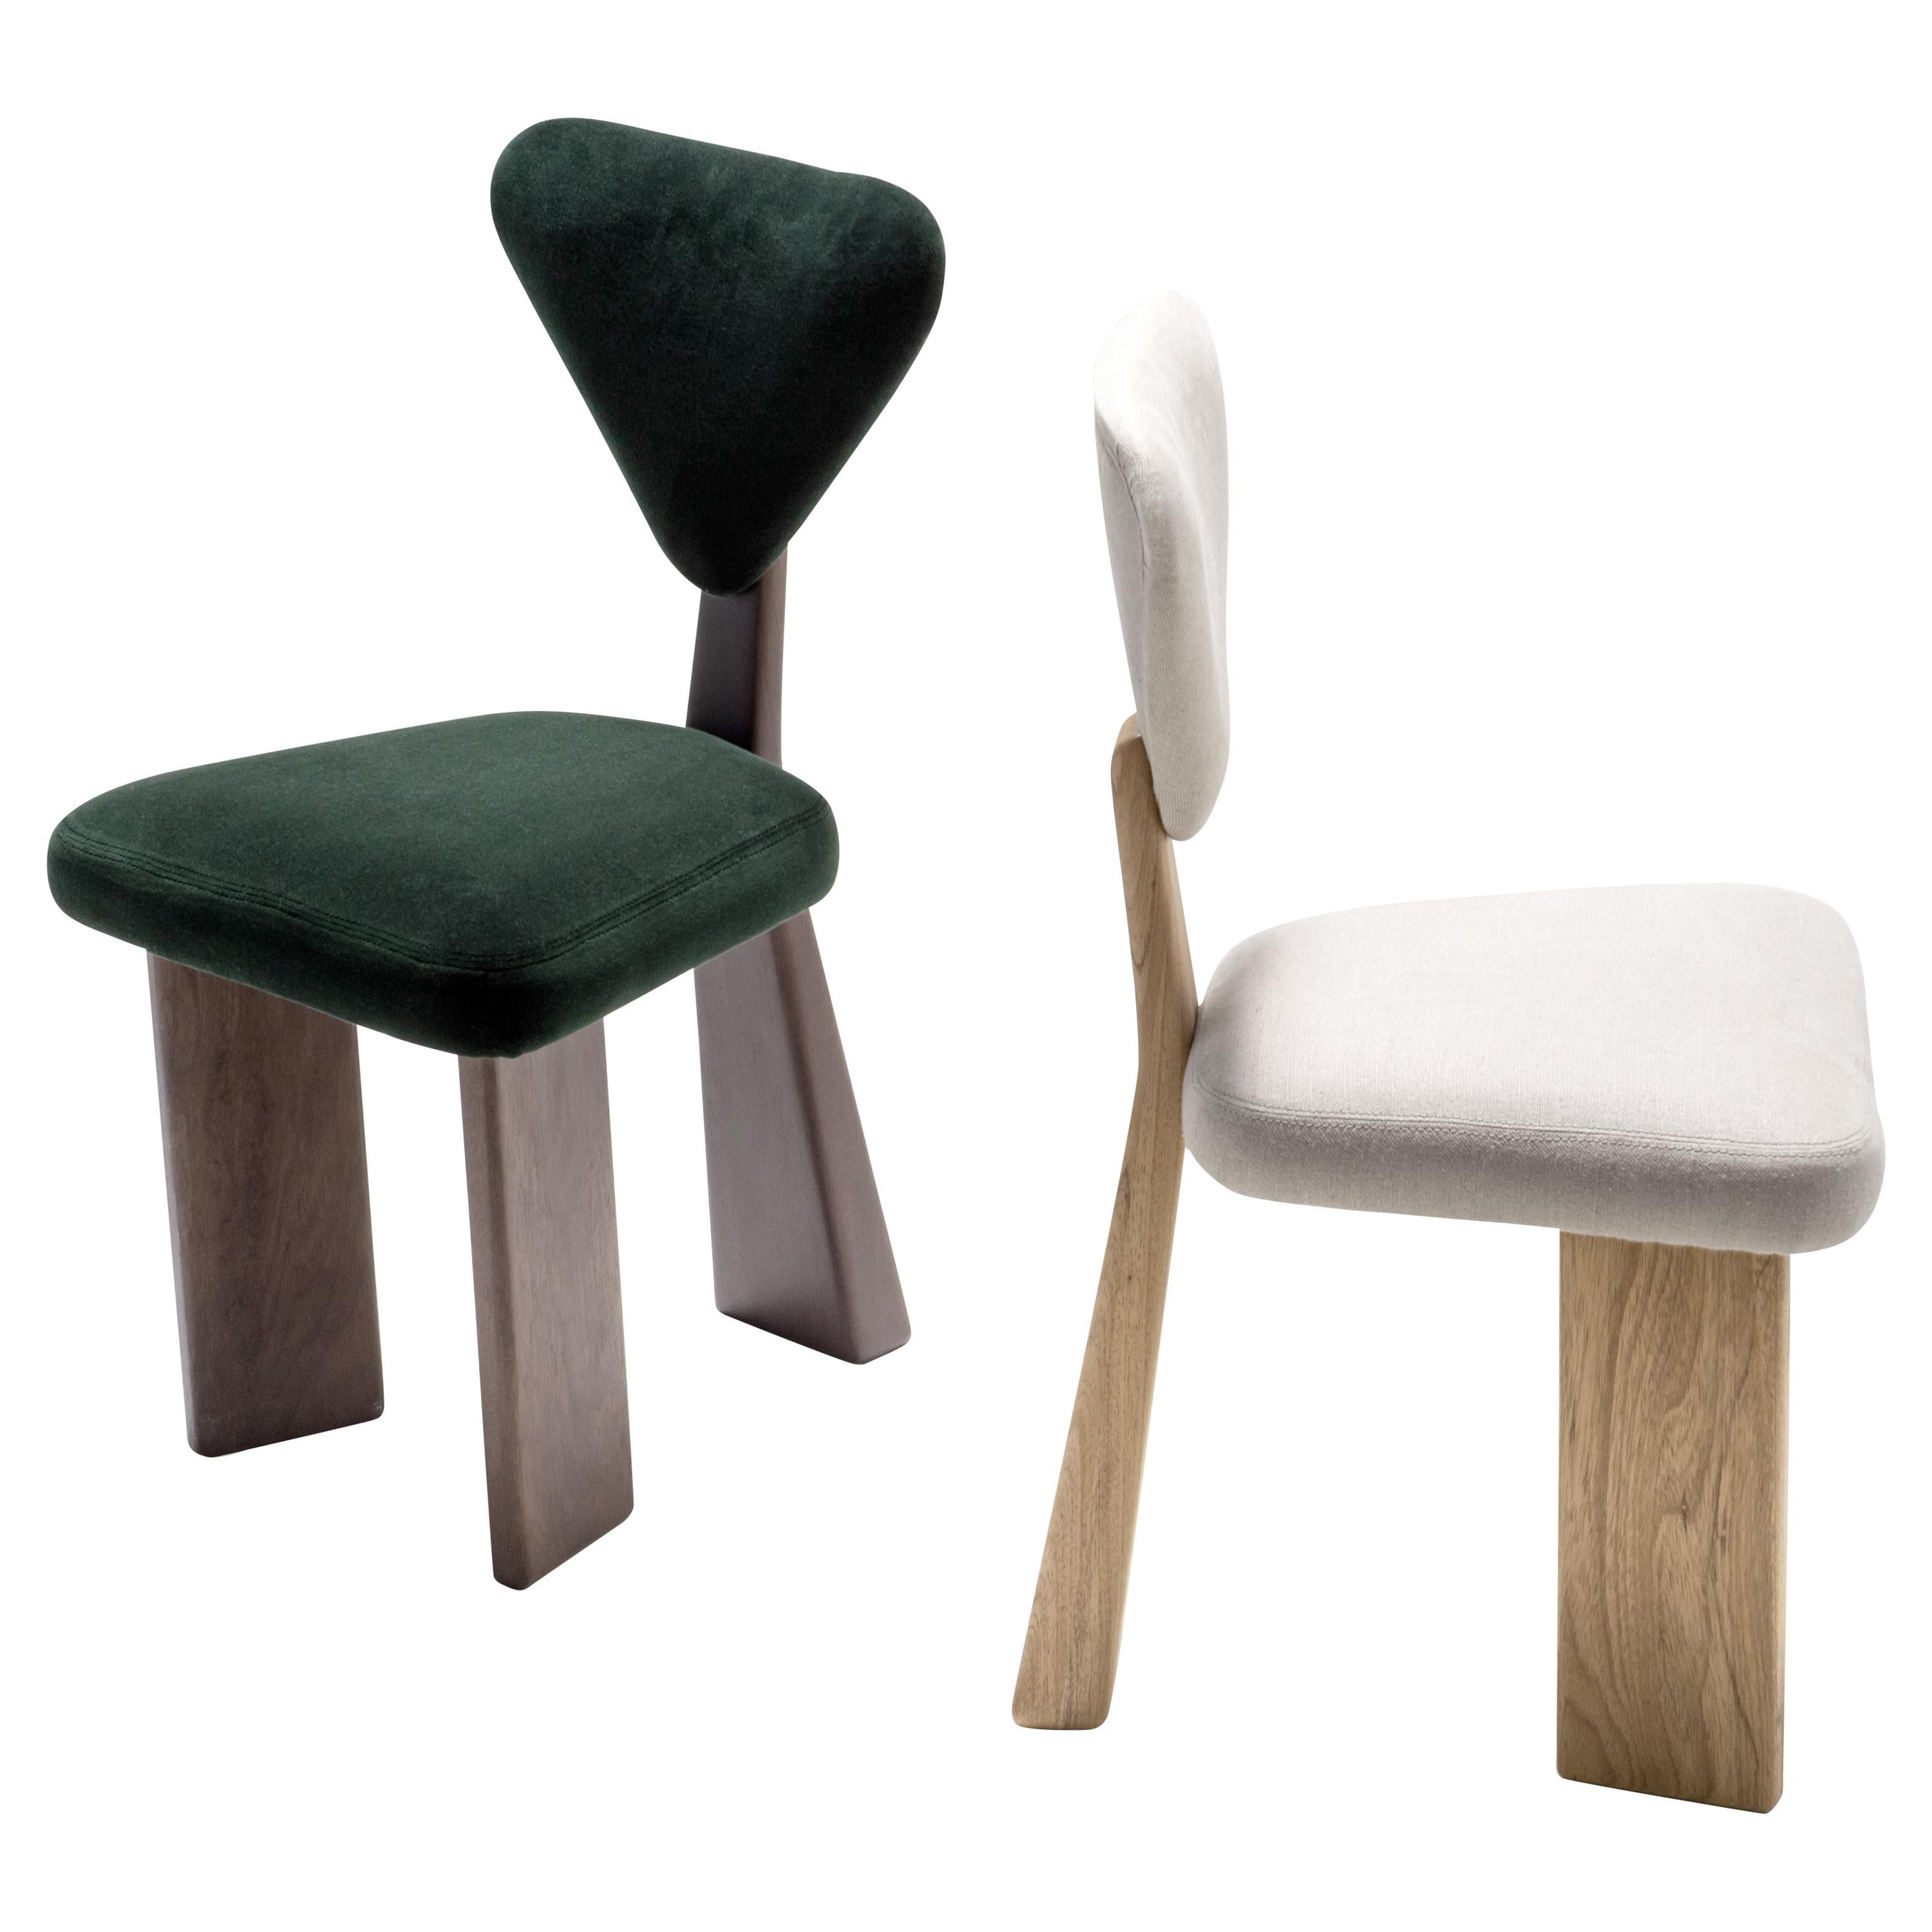 Beau Contemporary Dining Chair In Solid Brazilian Walnut Wood By Juliana  Vasconcellos For Sale